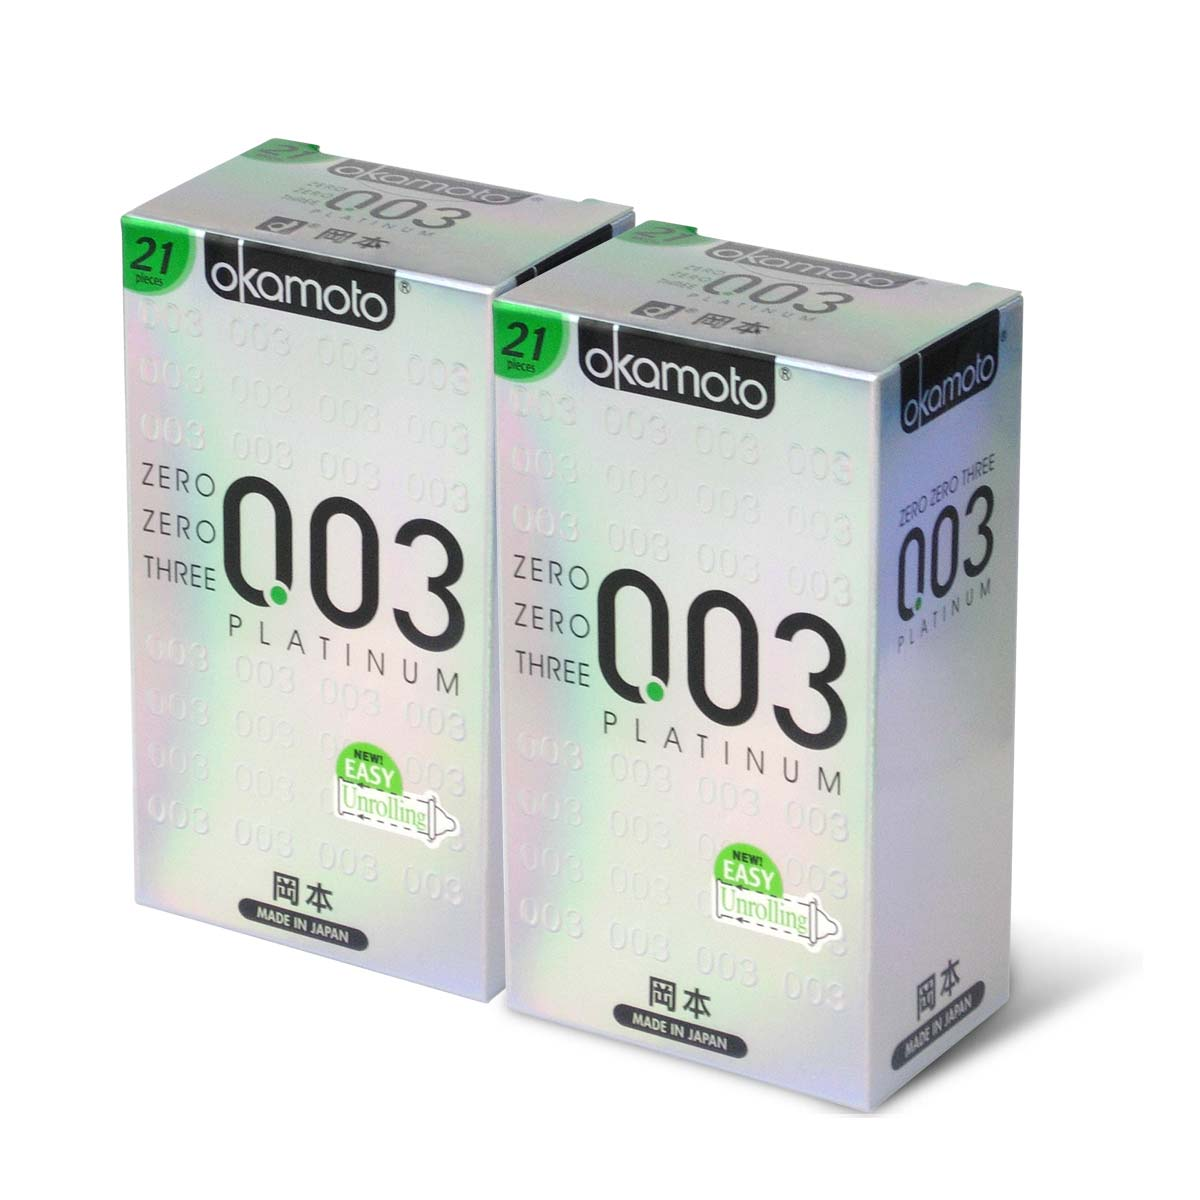 Okamoto 0.03 Platinum 21s Twin Pack Set 42 pieces condom